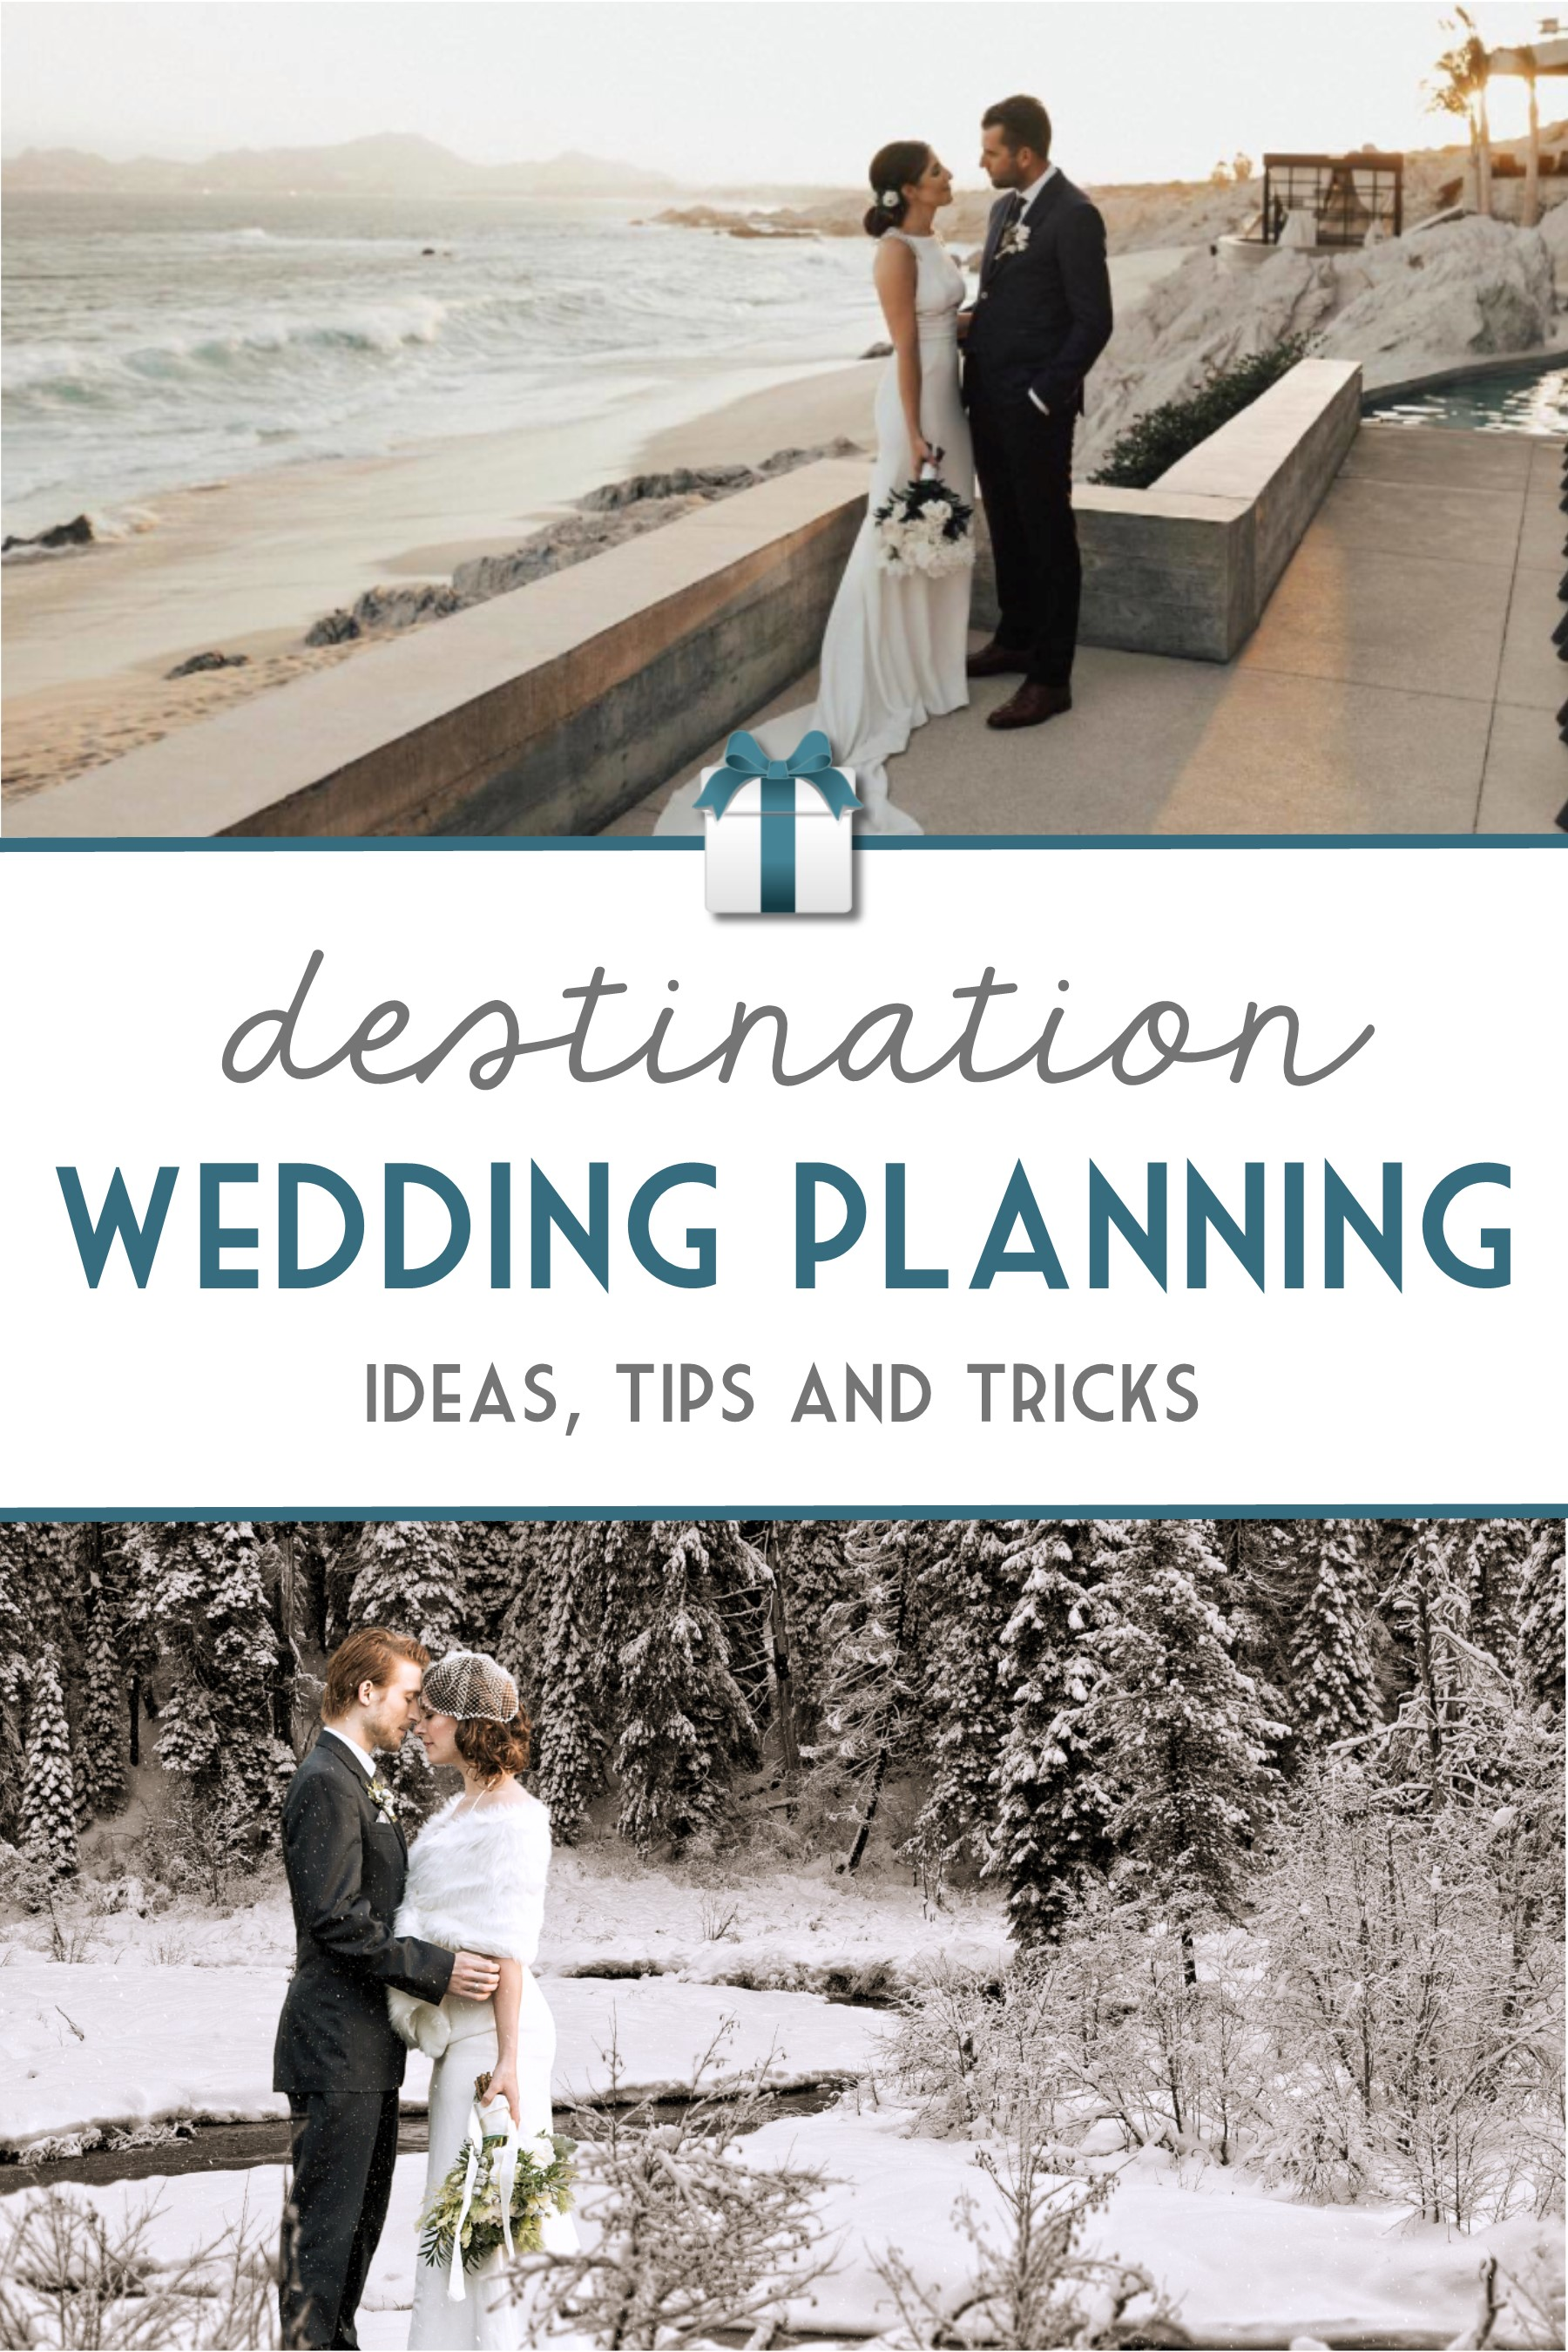 Tips and tricks for destination wedding planning for Destination wedding planning guide